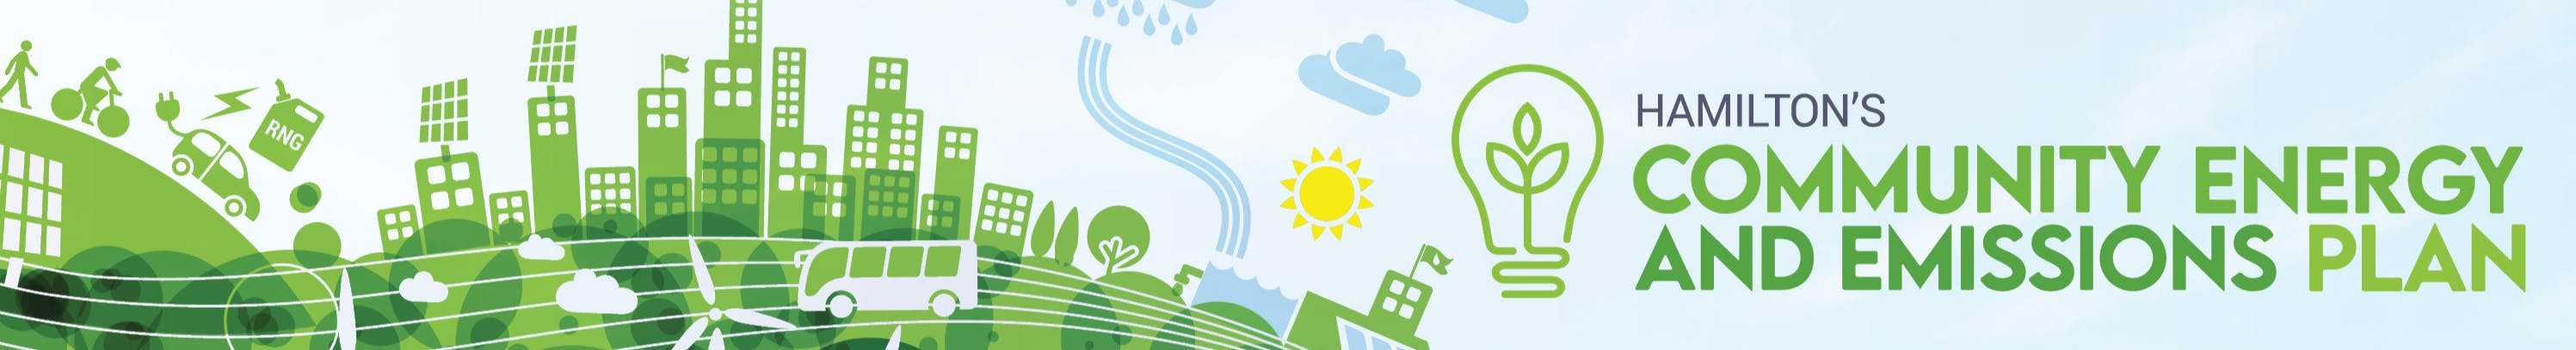 "Banner Design Illustration with text ""Hamilton's Community Energy and Emissions Plan"""